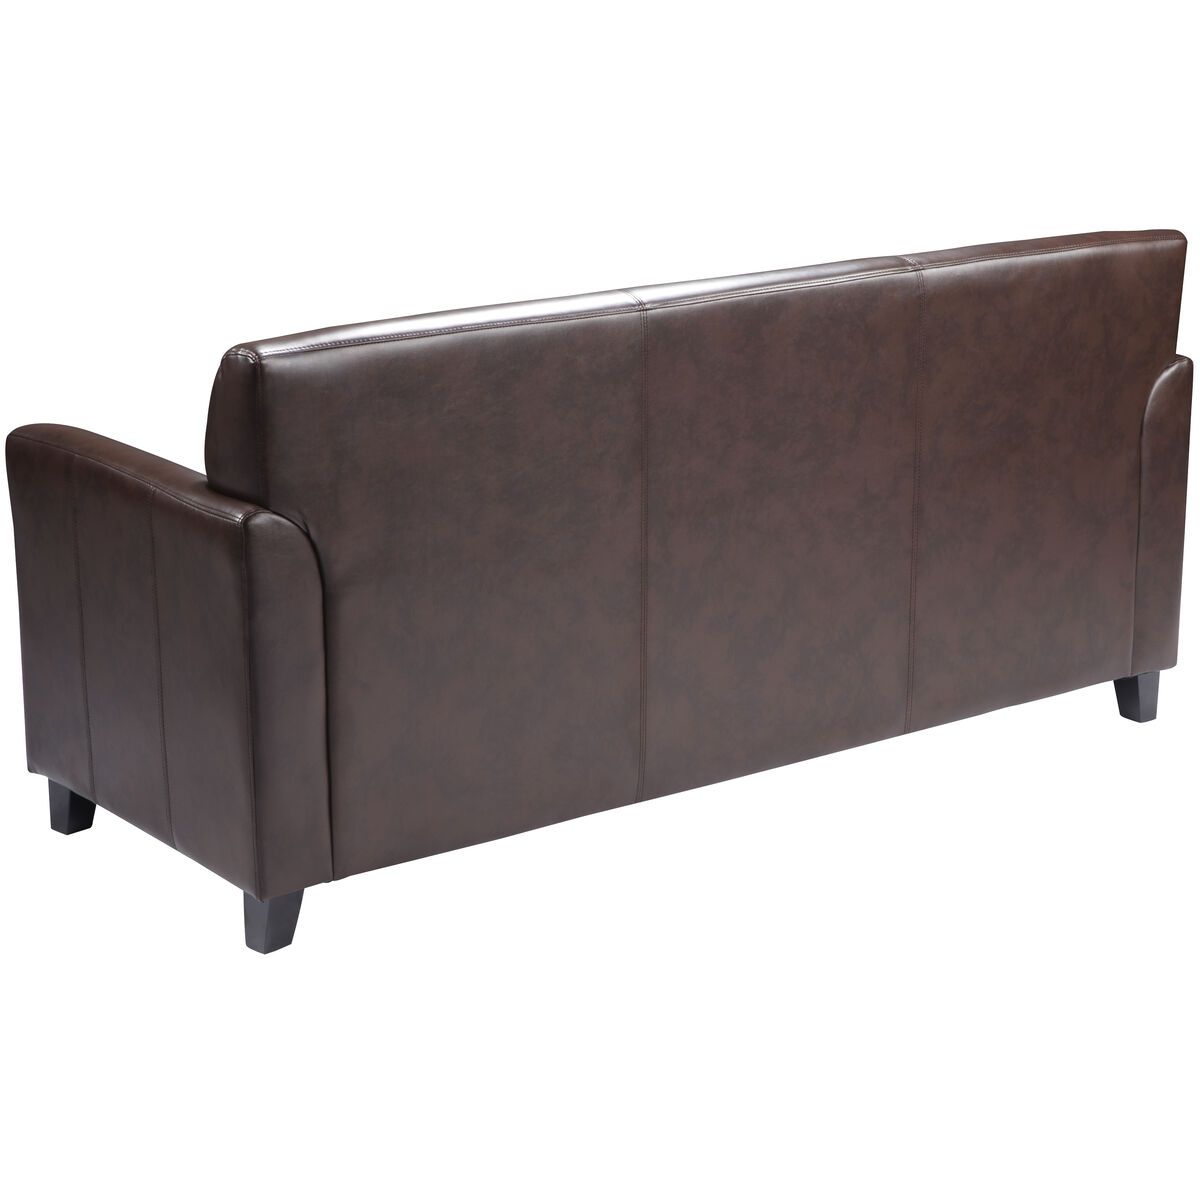 Brown Leather Sofa Bt 827 3 Bn Gg